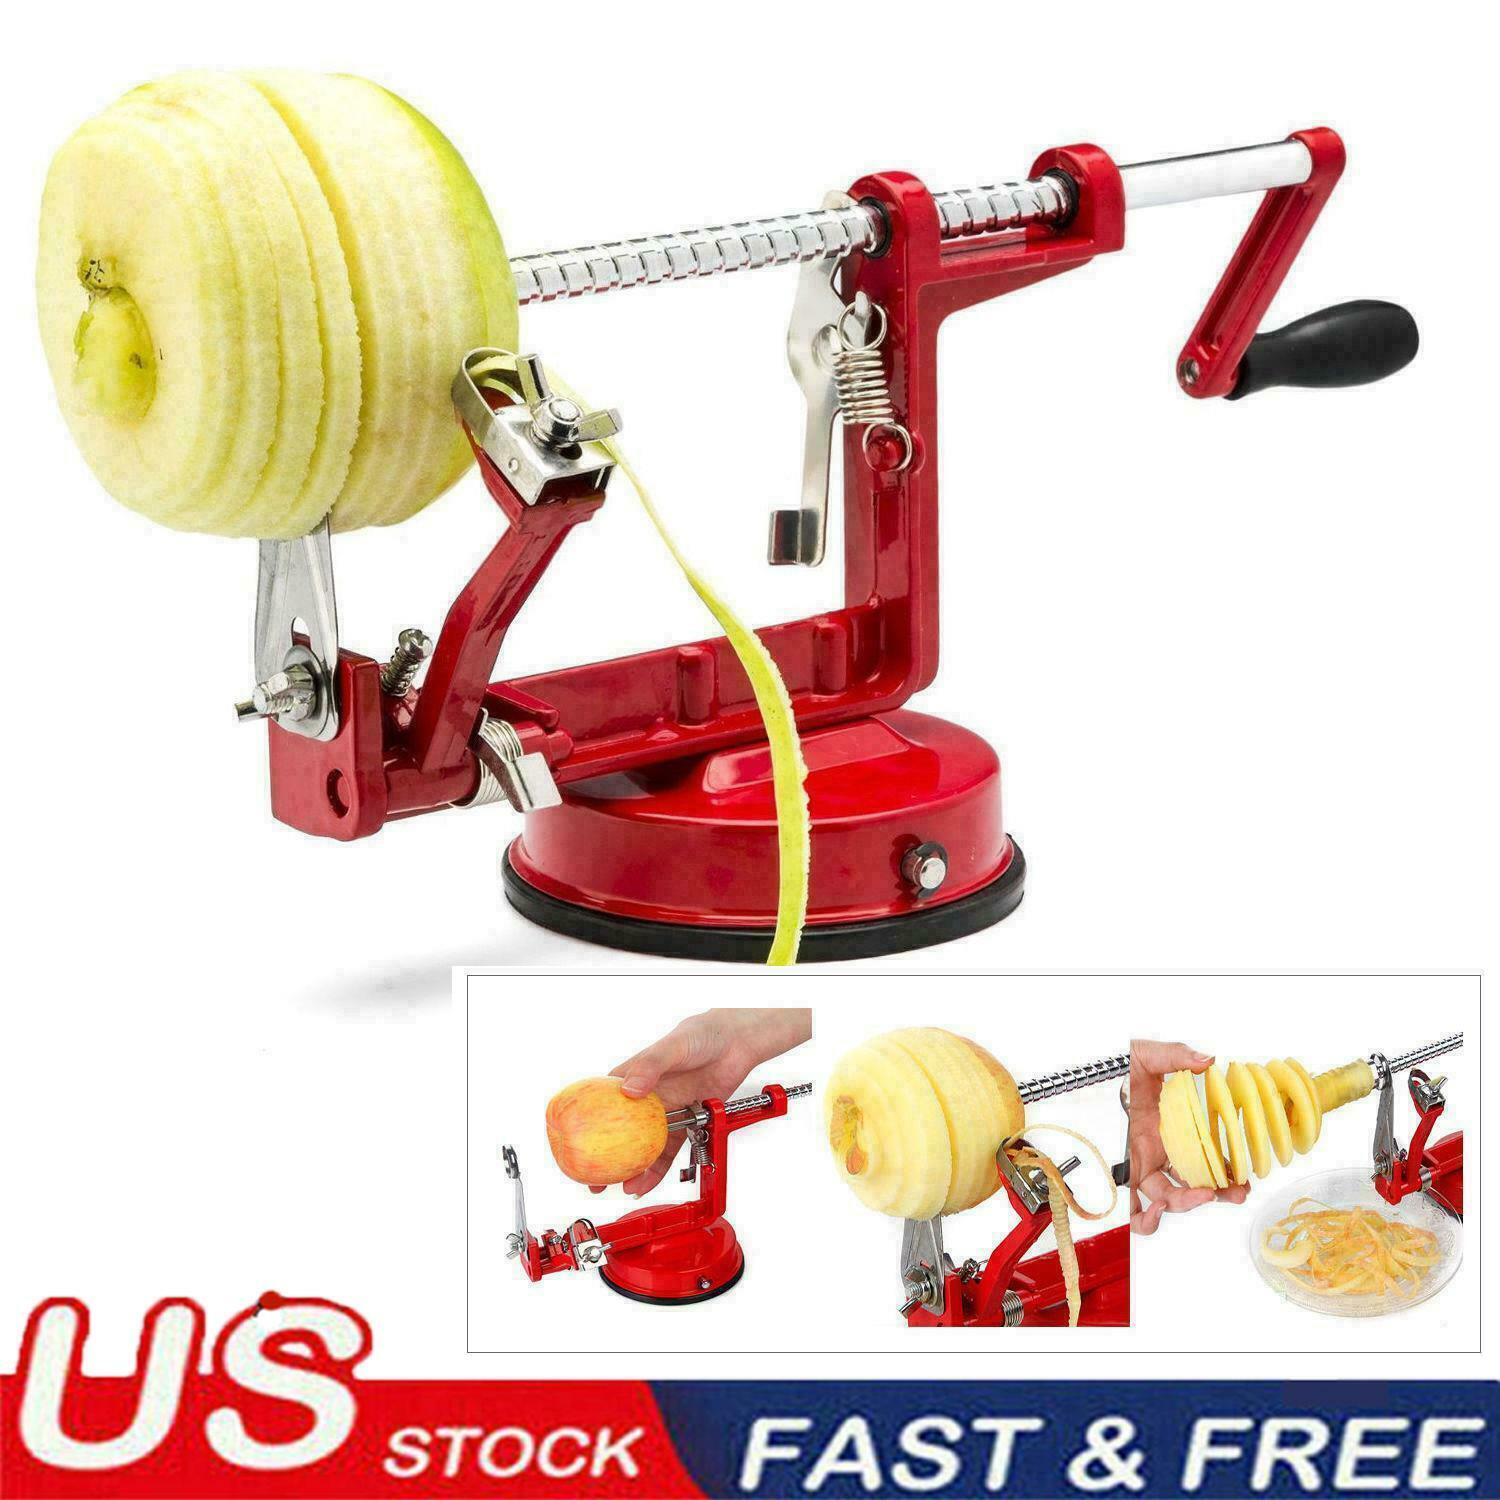 3 In 1 Apple Pear Peeler Slicer Corer Potato Cutter Parer Fr